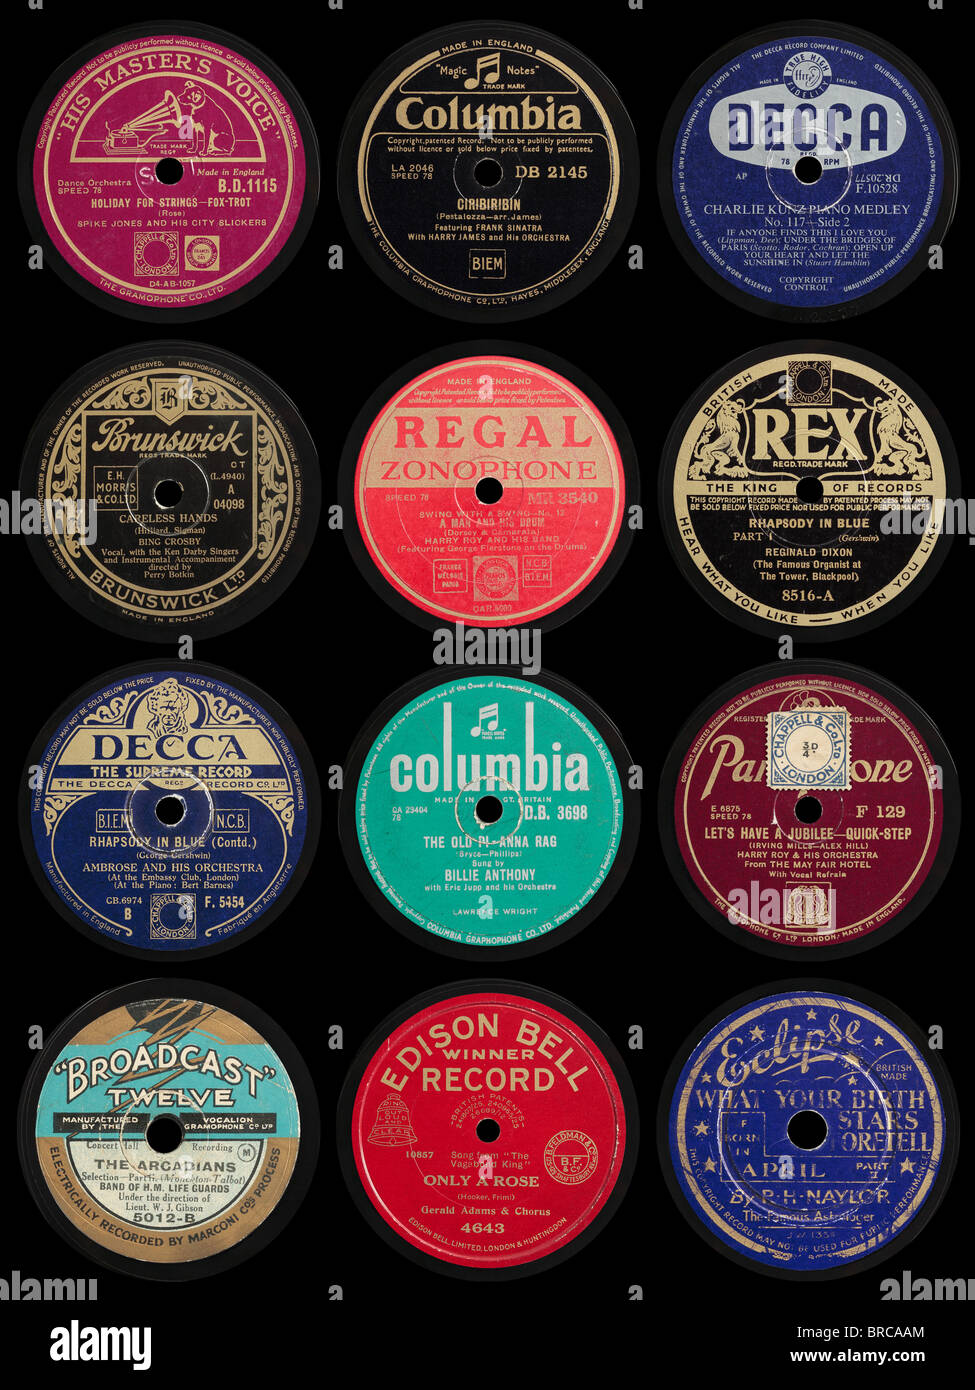 78 Images About Temperance On Pinterest: Old 78 Rpm Gramophone Record Labels Stock Photo, Royalty